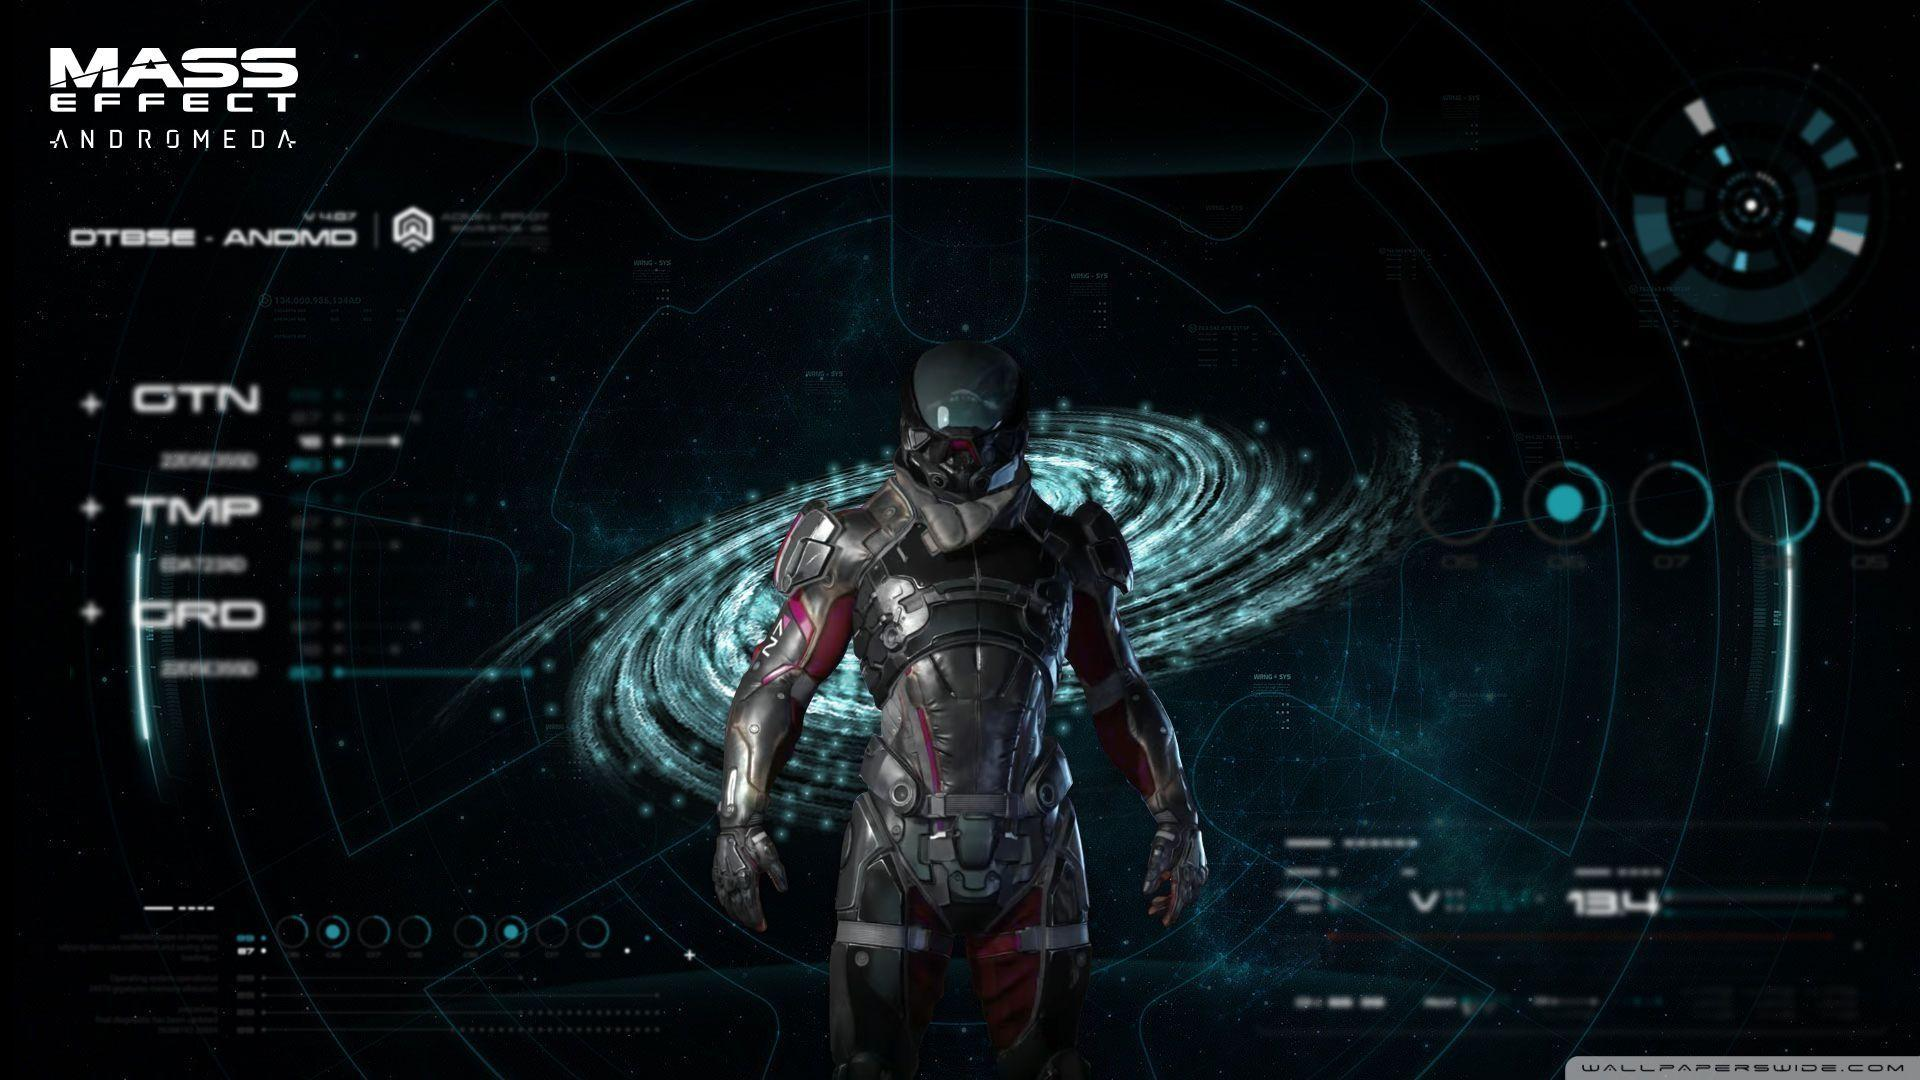 Mass Effect: Andromeda Wallpapers